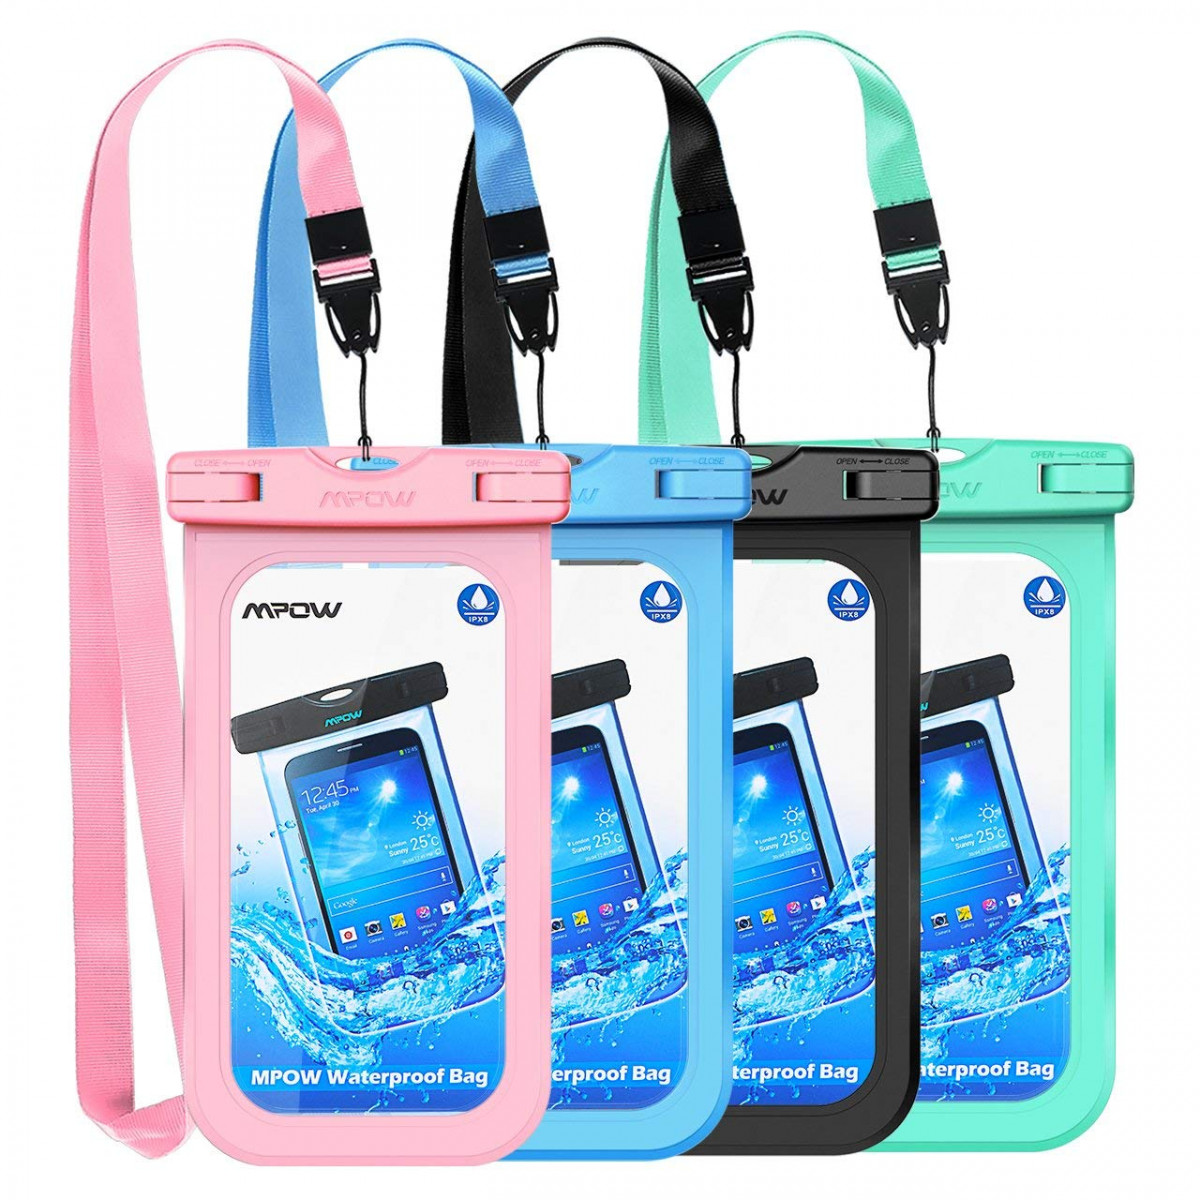 the latest d4d9c e933e Mpow Waterproof Case, Universal IPX8 Waterproof Phone Pouch Underwater  Phone Case Bag for iPhone X/8/8P/7/7P, Samsung Galaxy S9/S9P/S8/Note 8,  Google ...